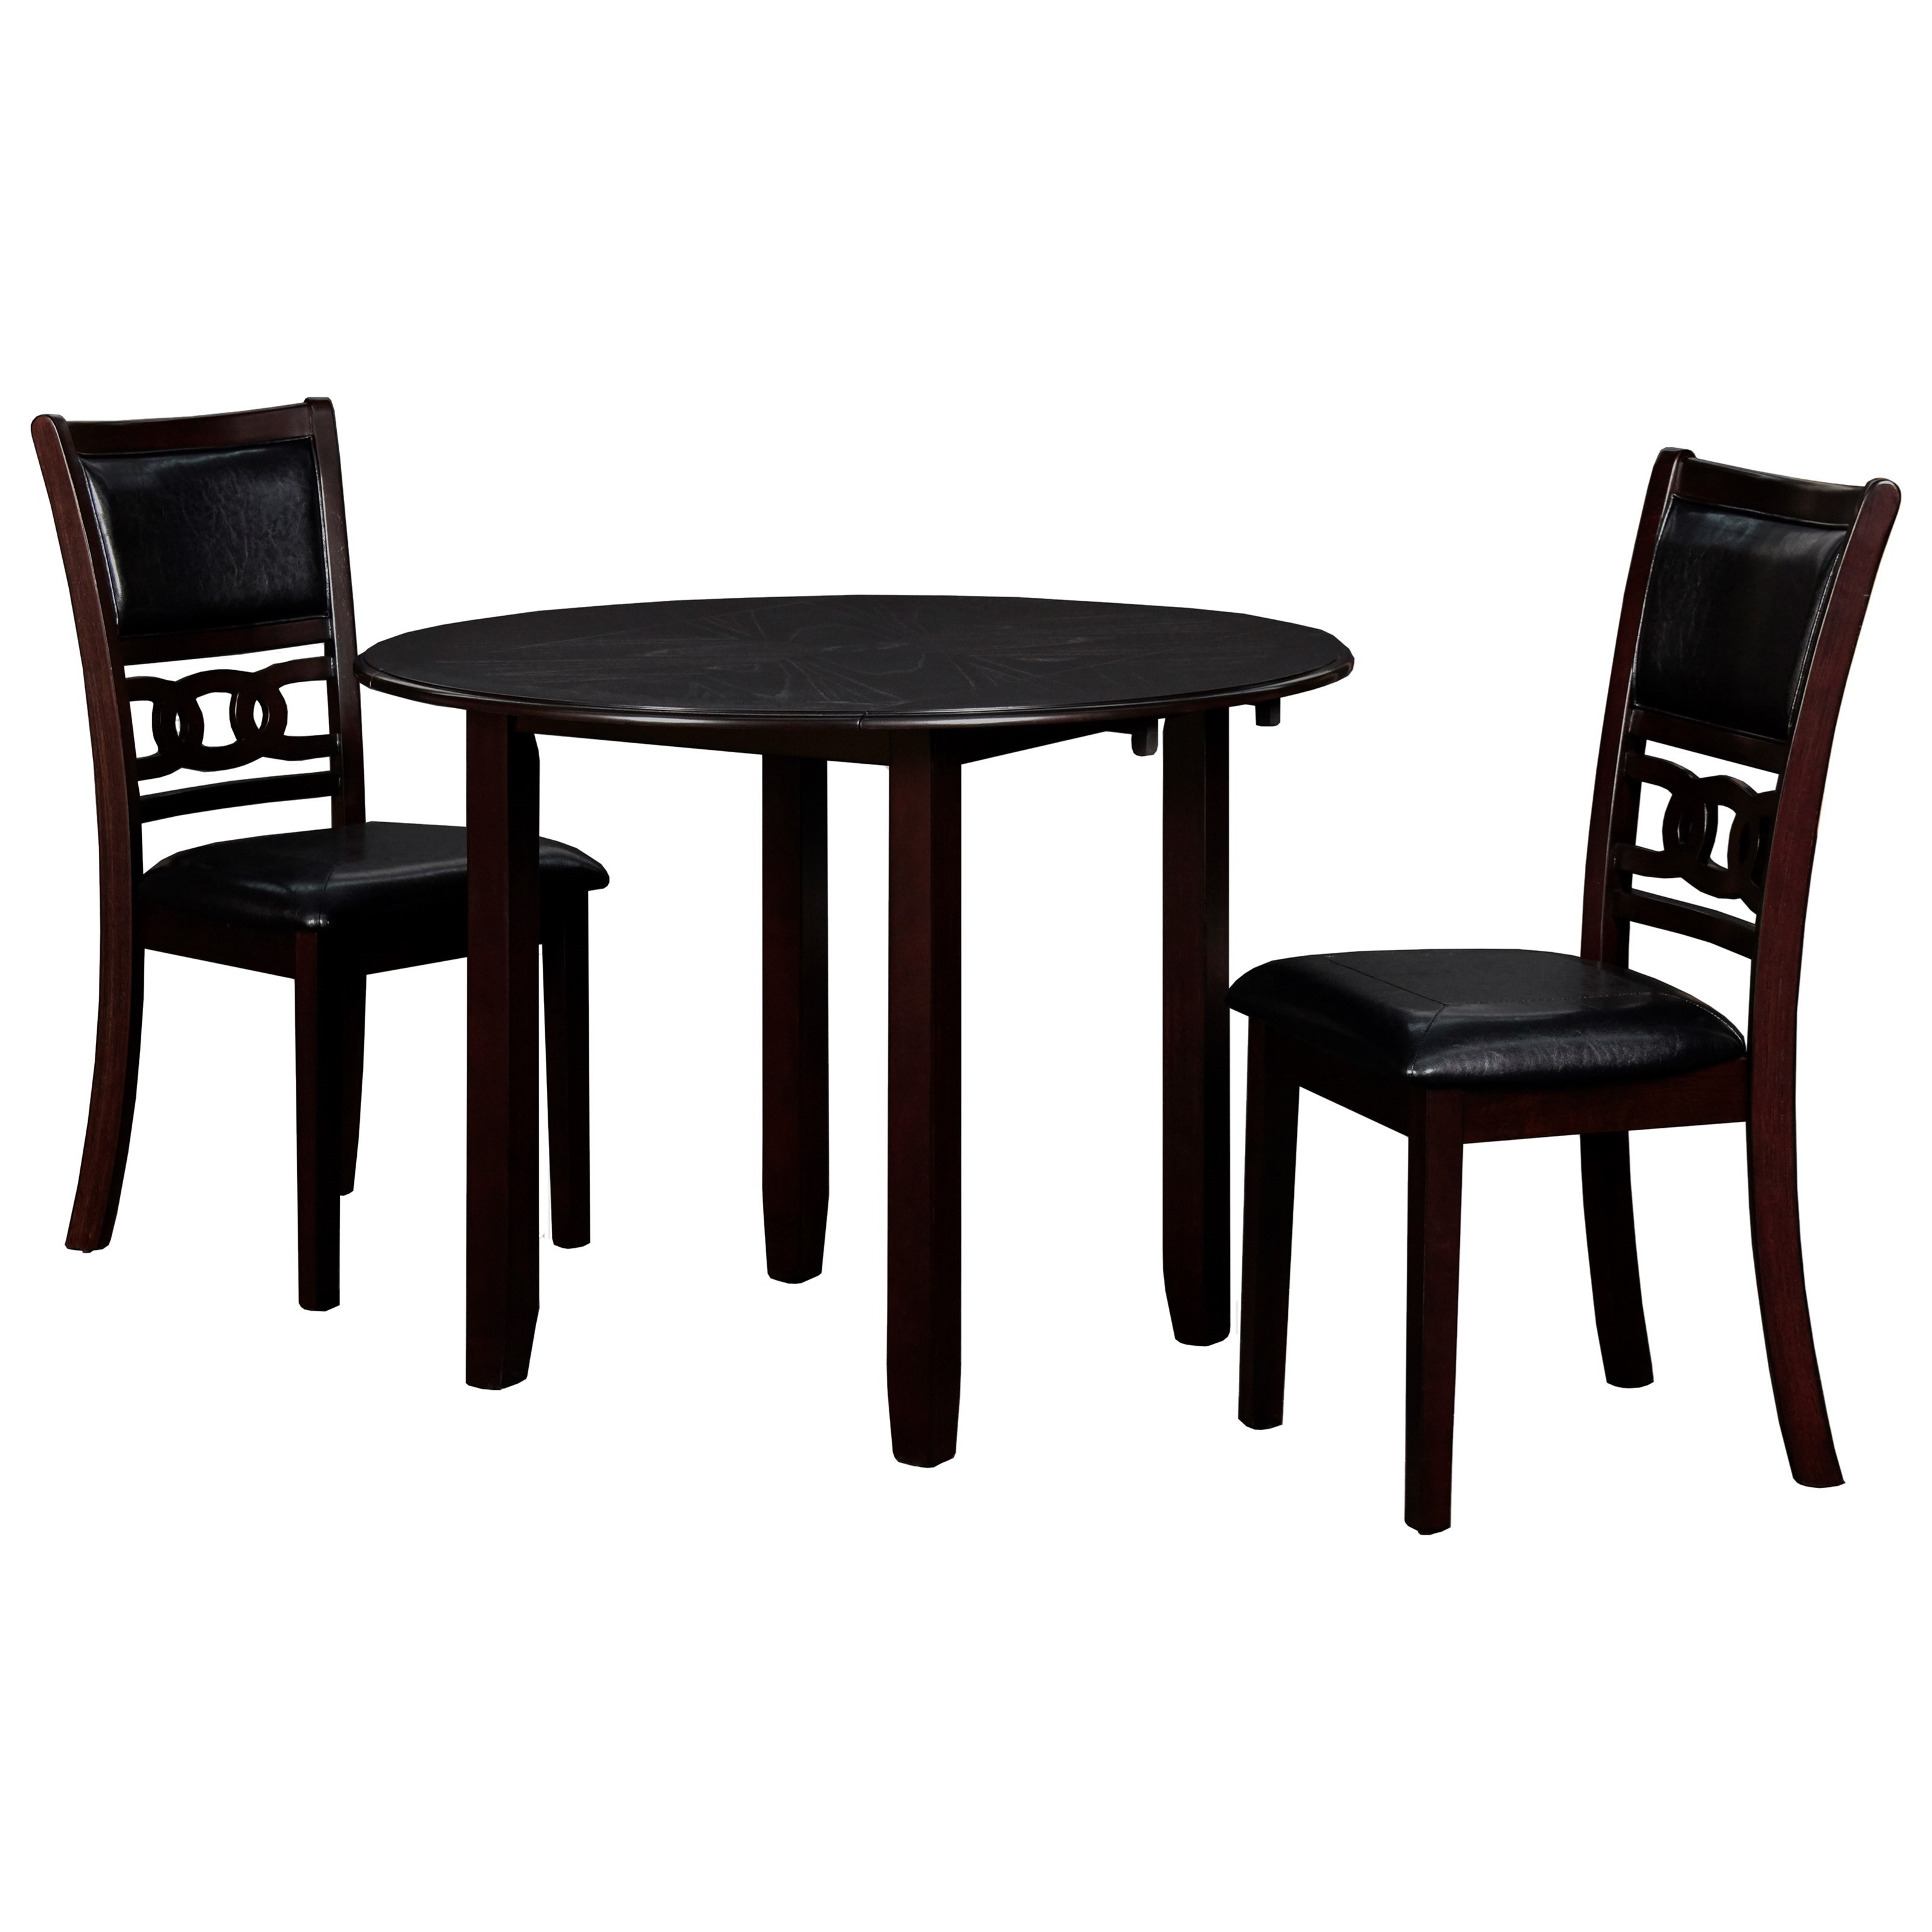 Gia 3-Piece Table and Chair Set by New Classic at Beds N Stuff